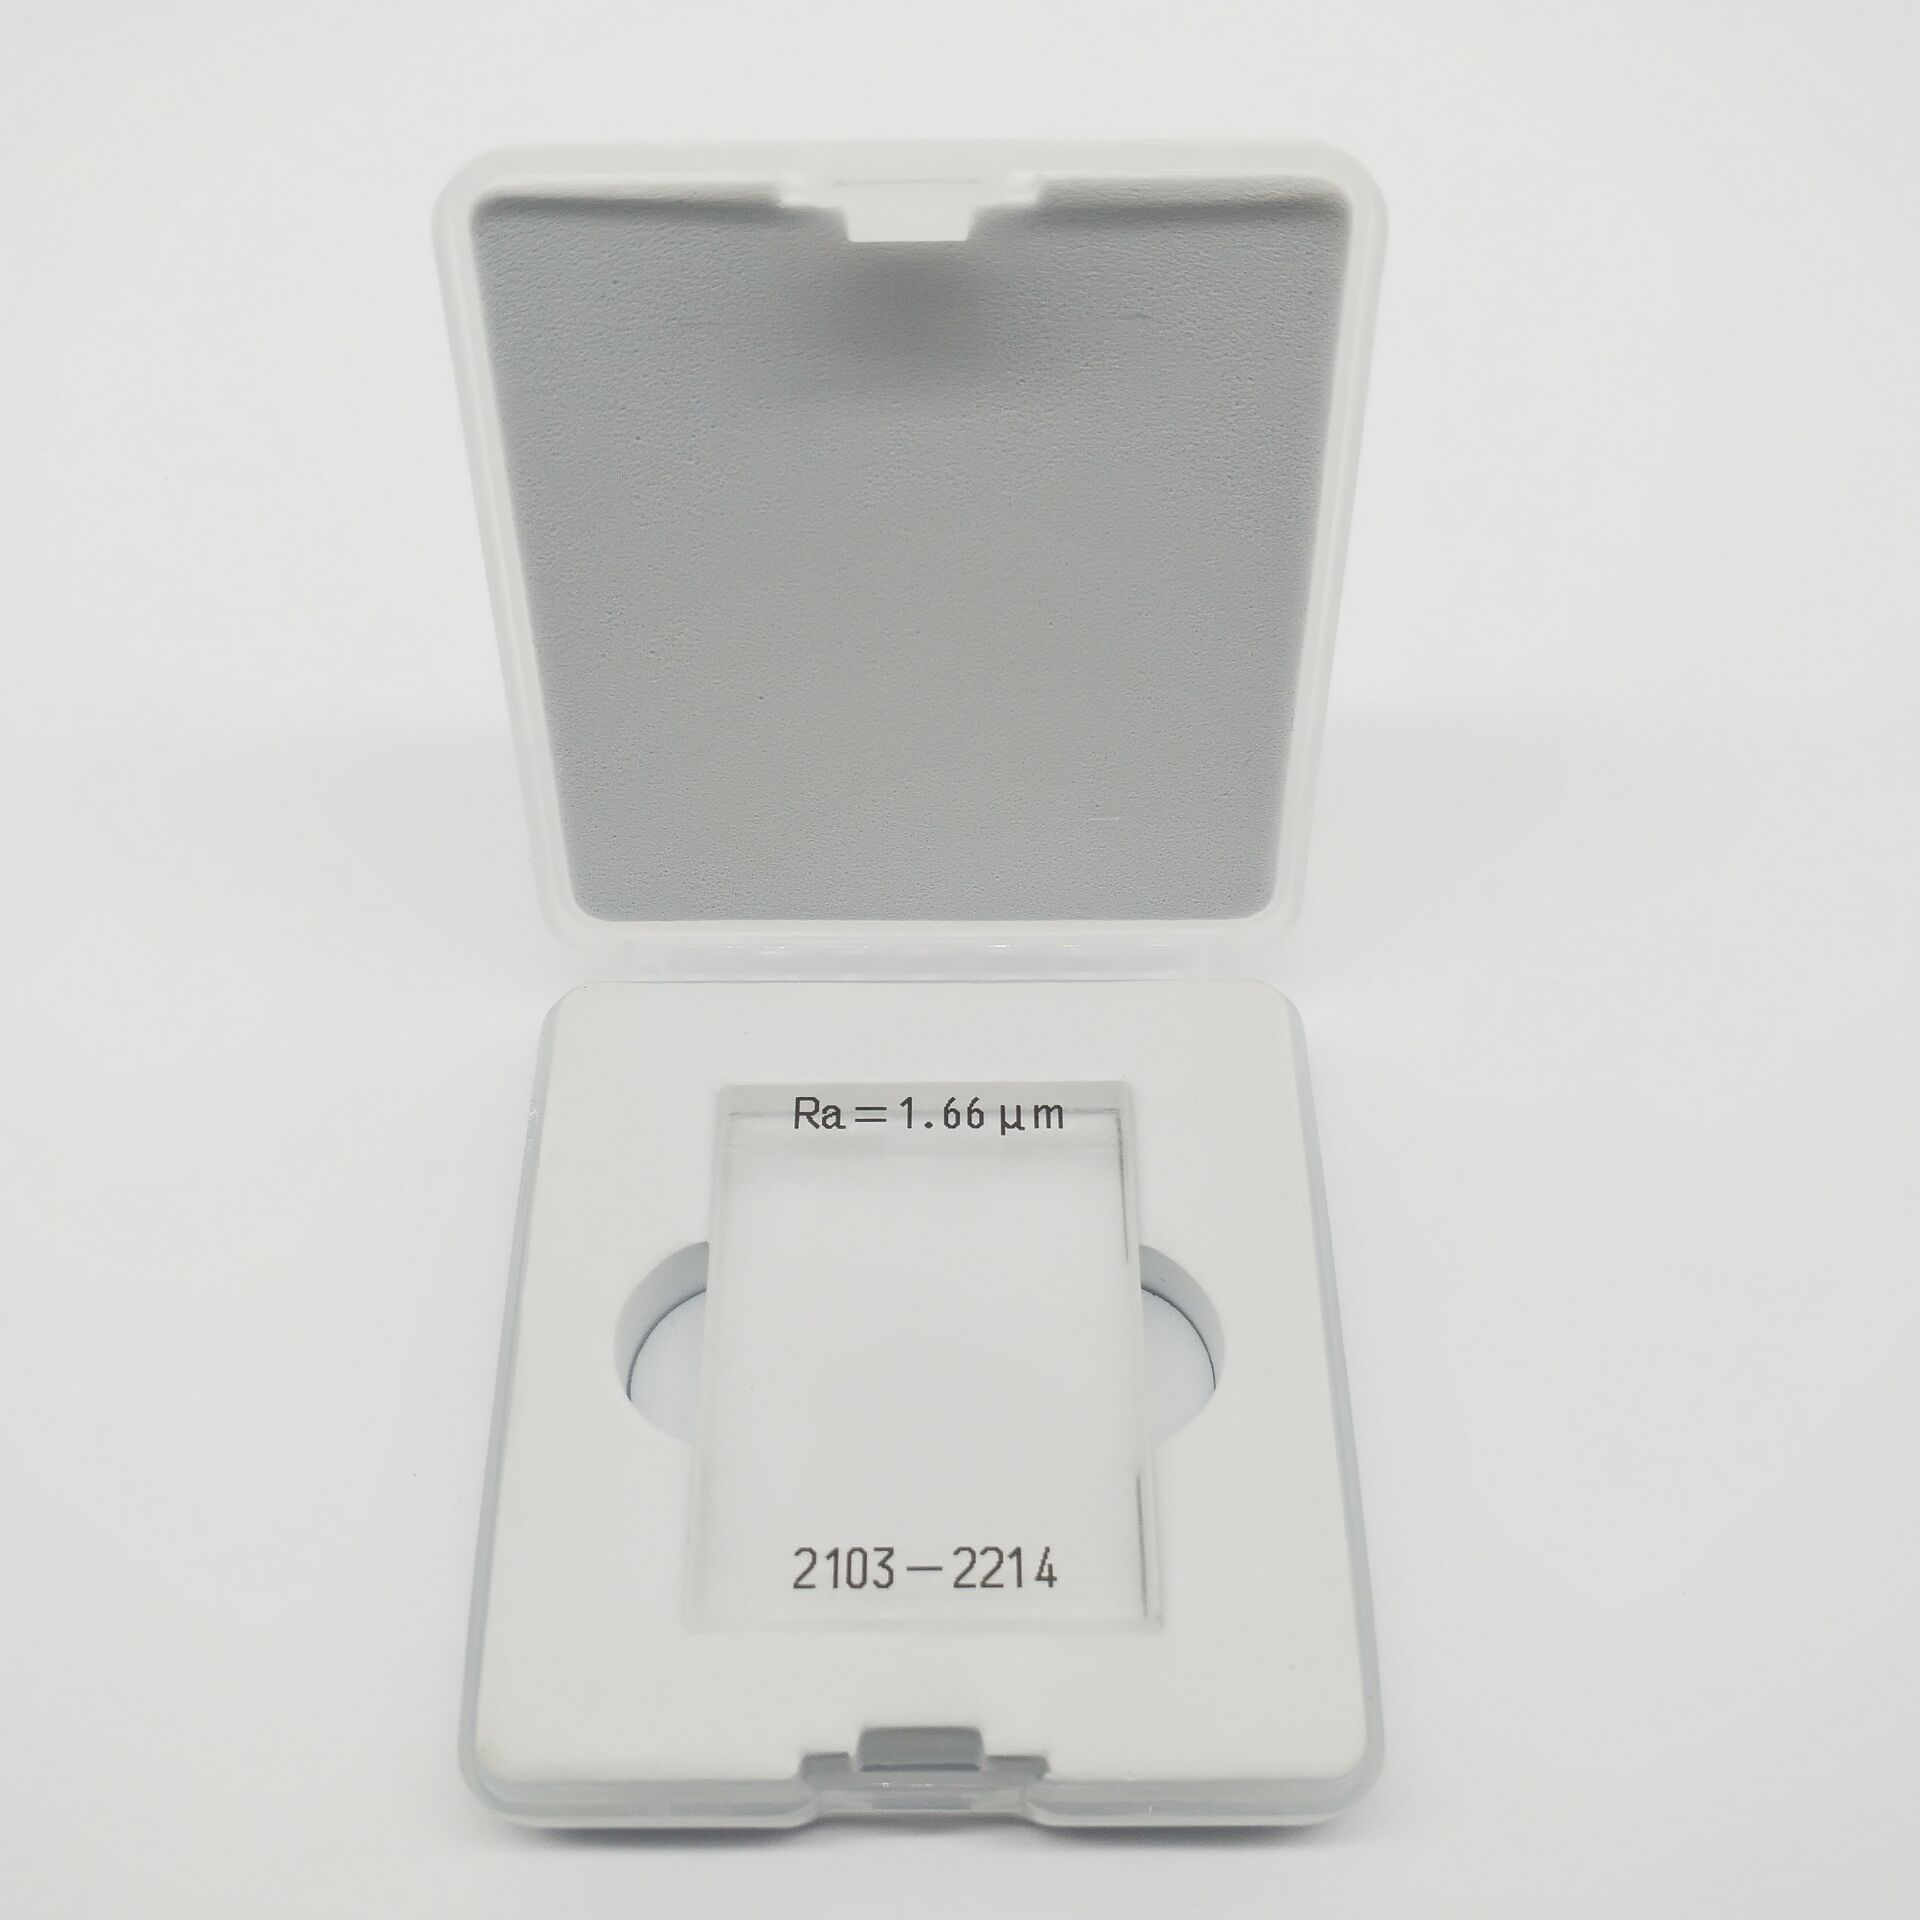 SRT5000 New Integrated Intelligent OLED display Surface Roughness Tester enlarge